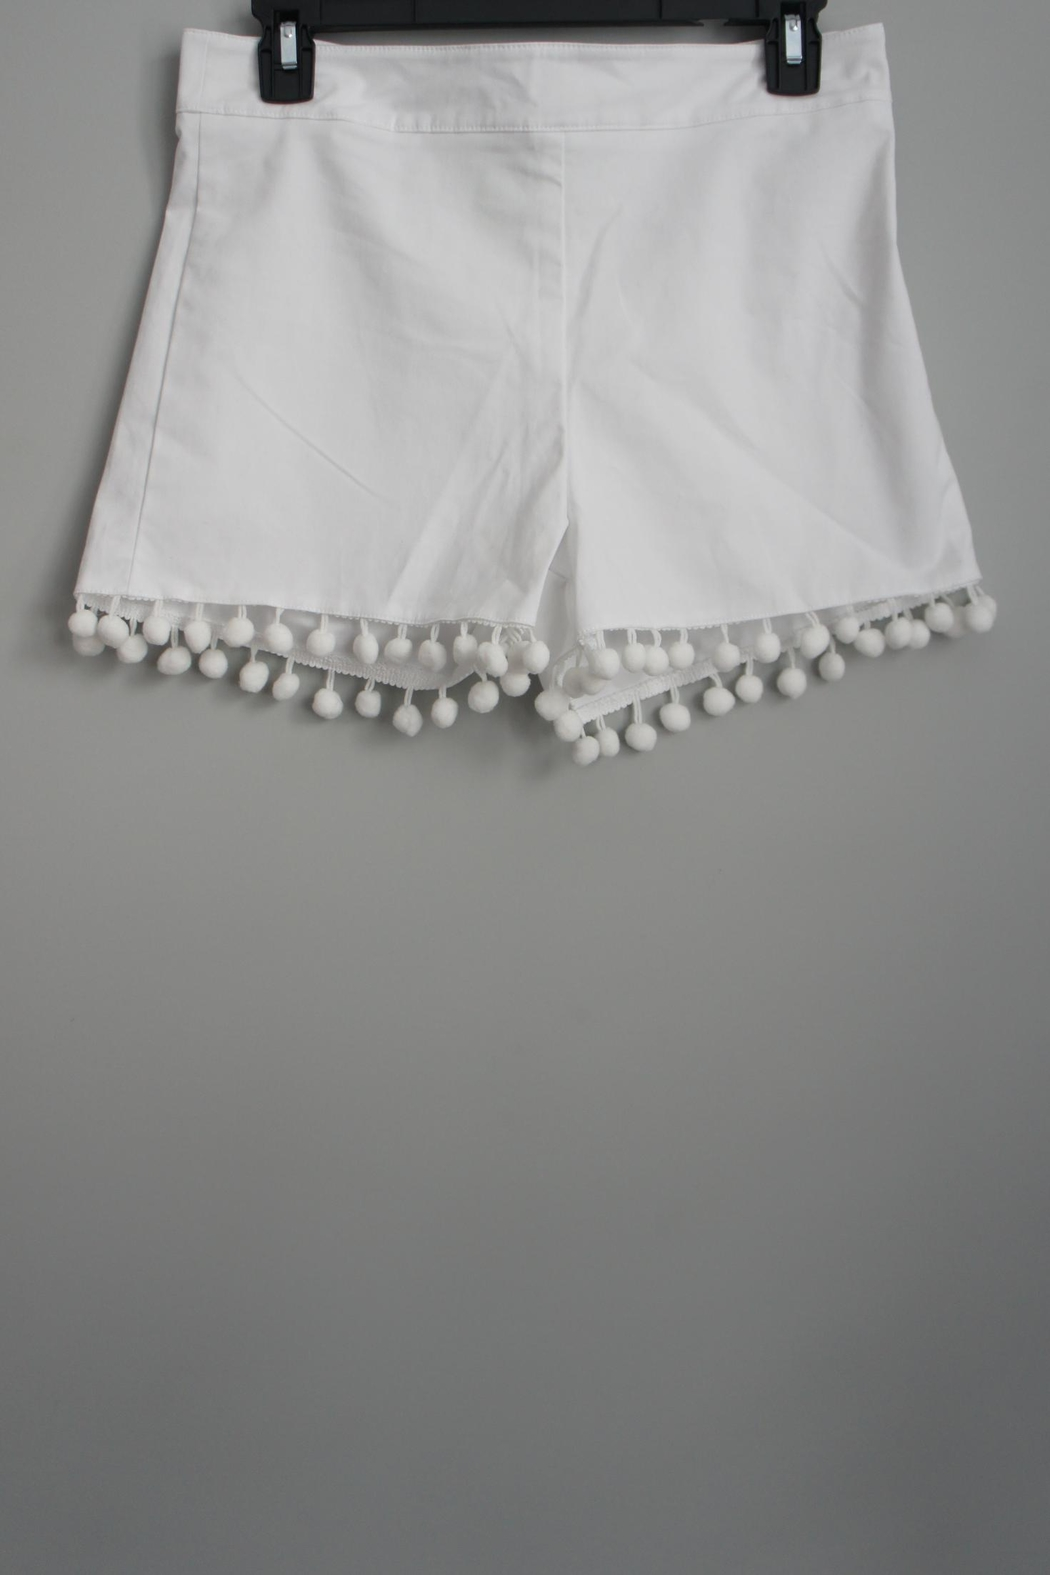 Anna Lane by MSC Collection Pompom Tailored Shorts - Front Full Image